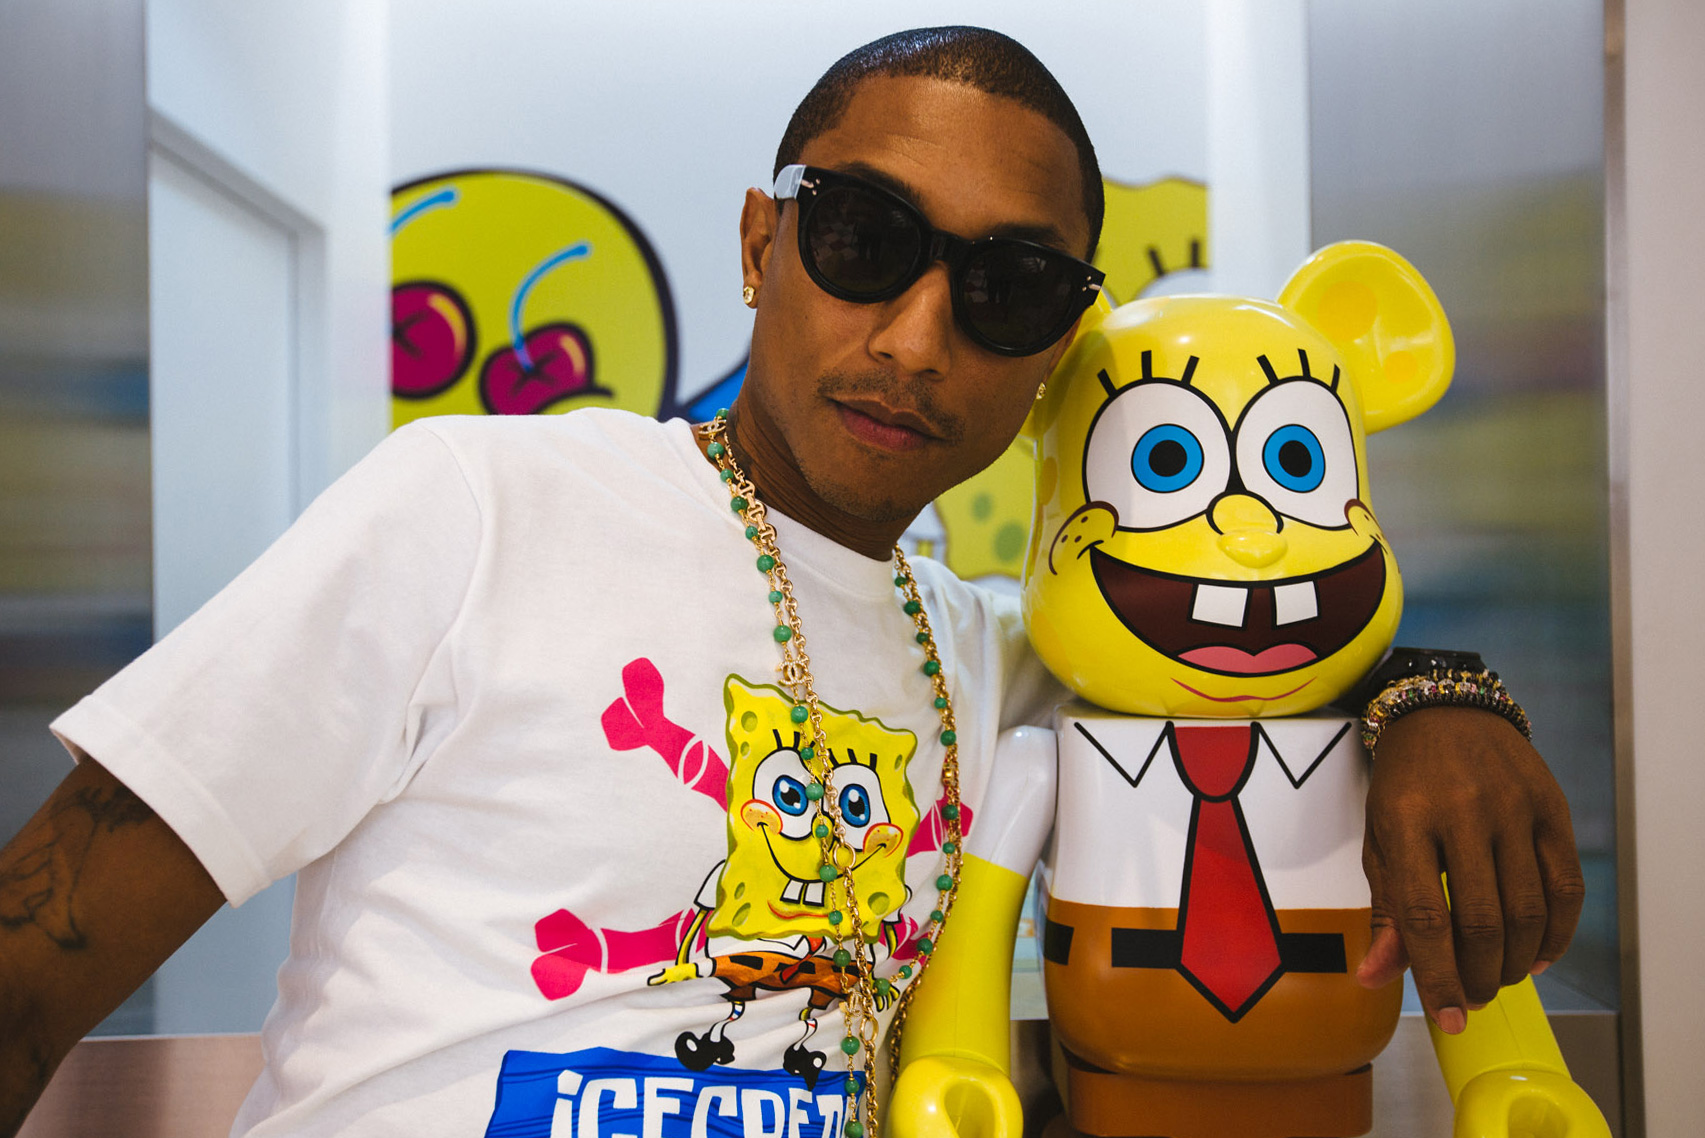 Pharrell Joins SpongeBob SquarePants for ICECREAM's 2013 Capsule Collection